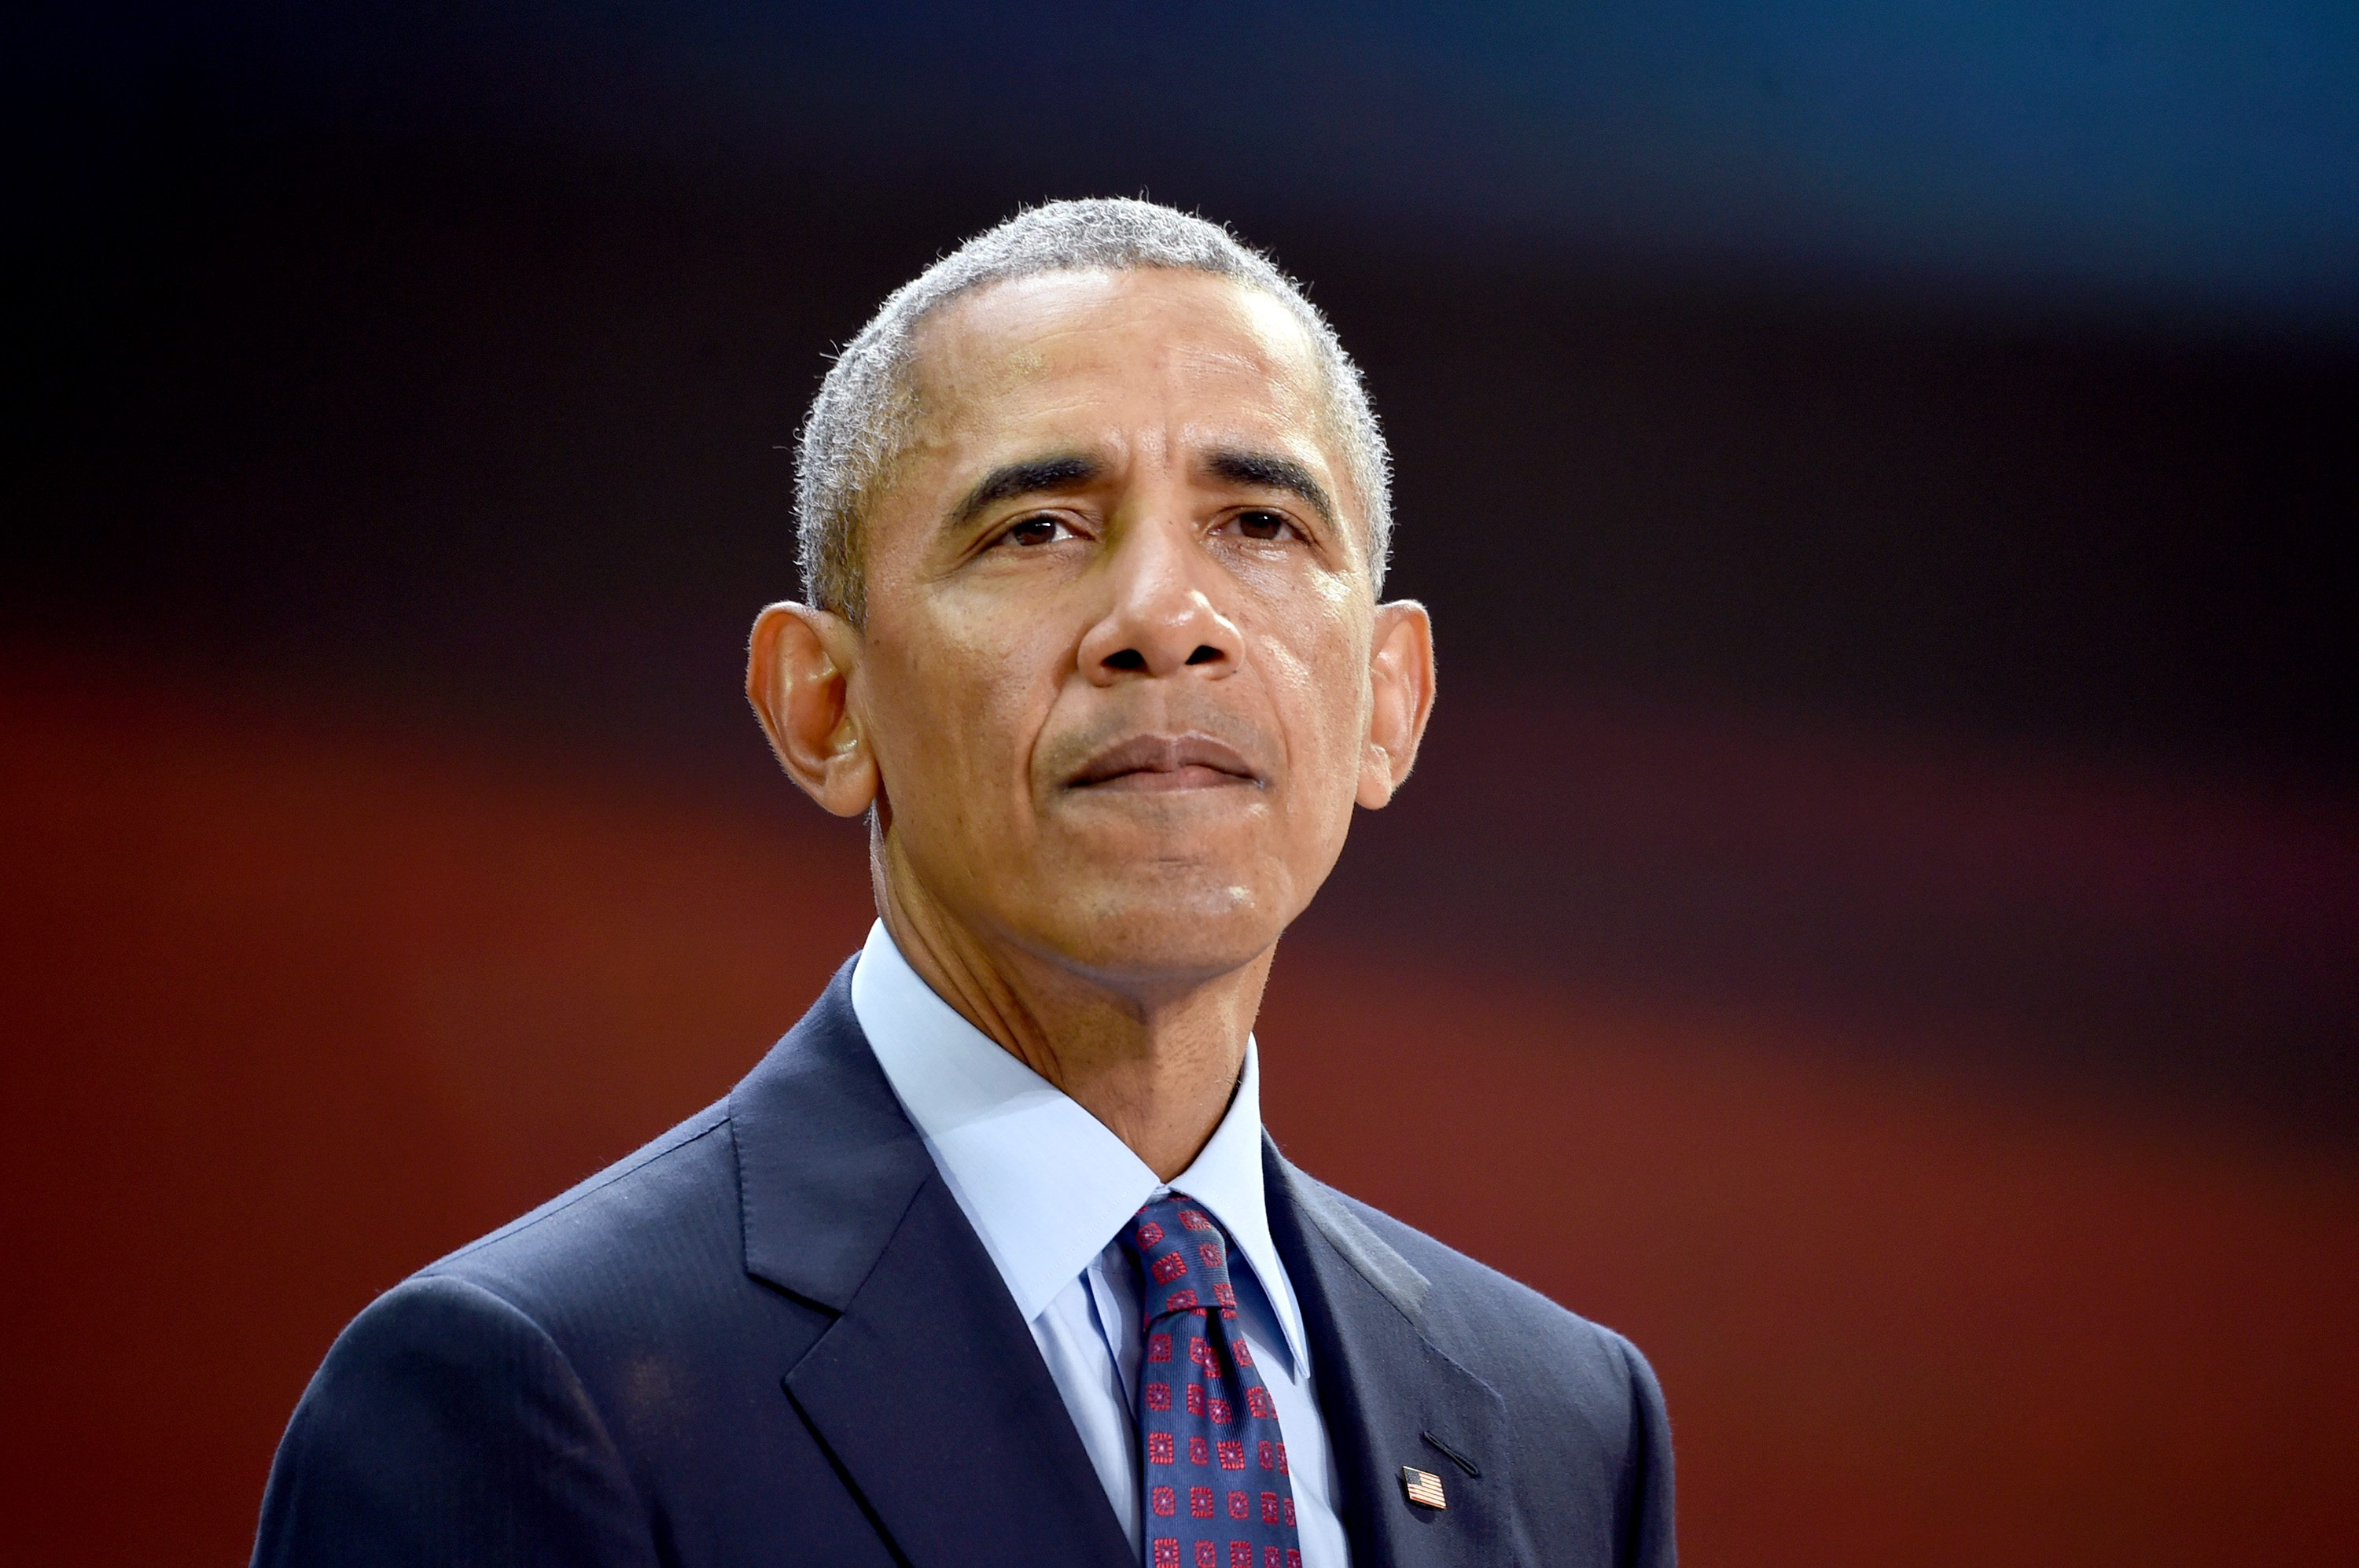 44 Facts About The 44th President, Barack Obama